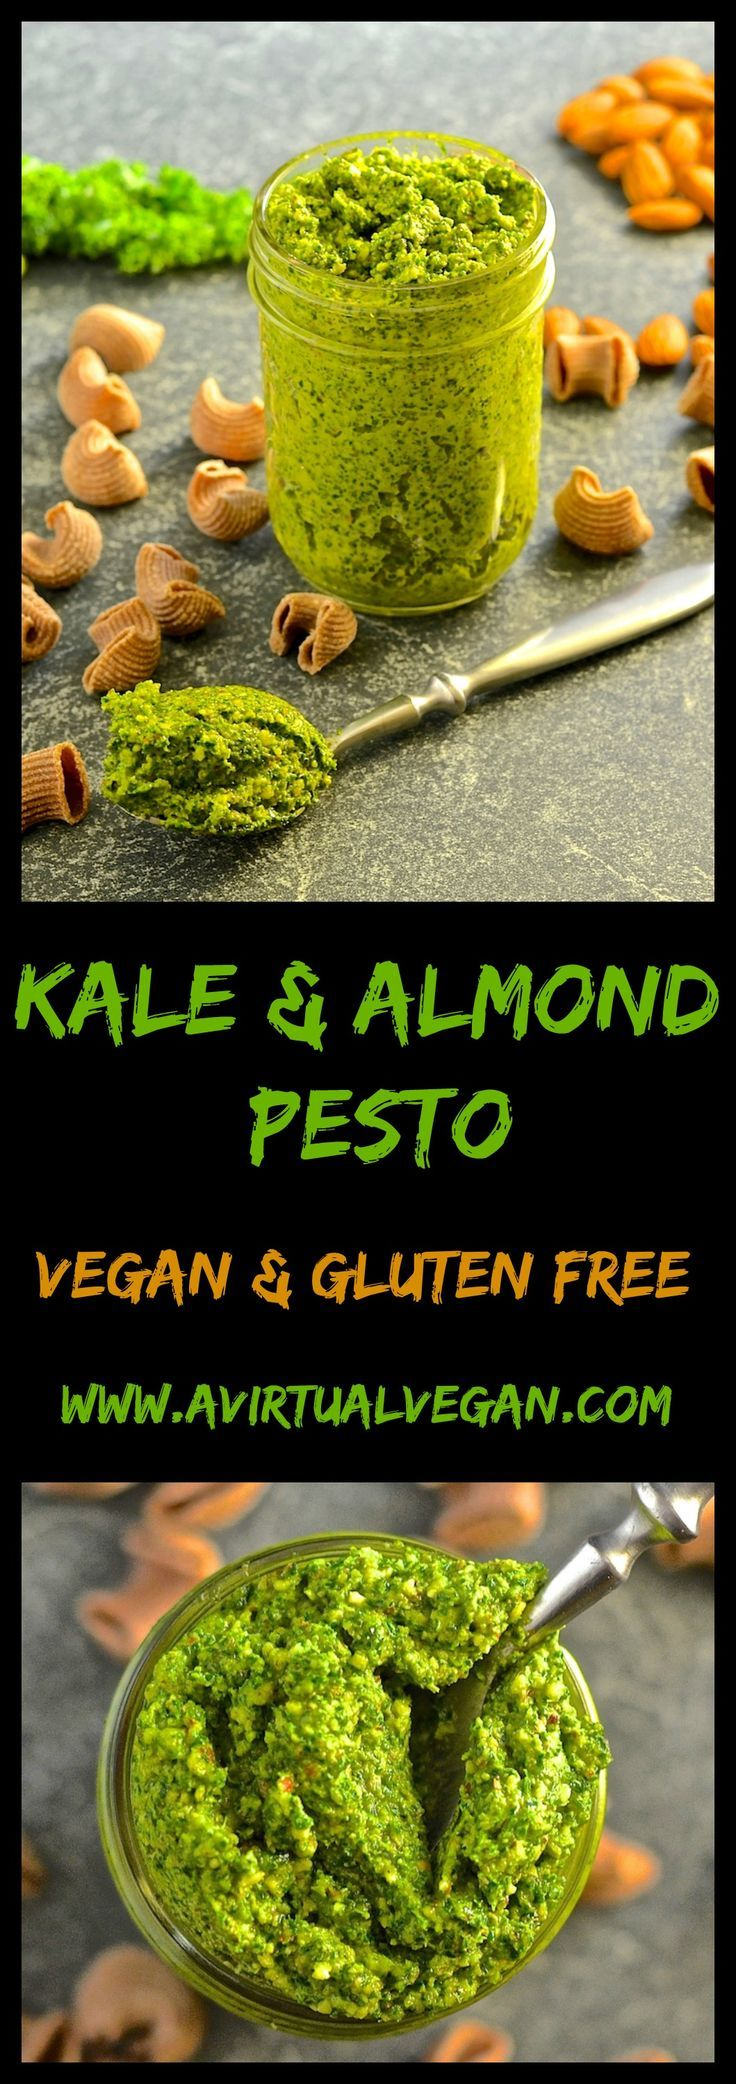 This Kale & Almond Pesto makes a wonderful alternative to traditional basil pesto plus it's cheaper to make & it's dairy free. Stir through freshly cooked pasta for a super fast & nutritious meal! #pesto #vegan #kale #almond